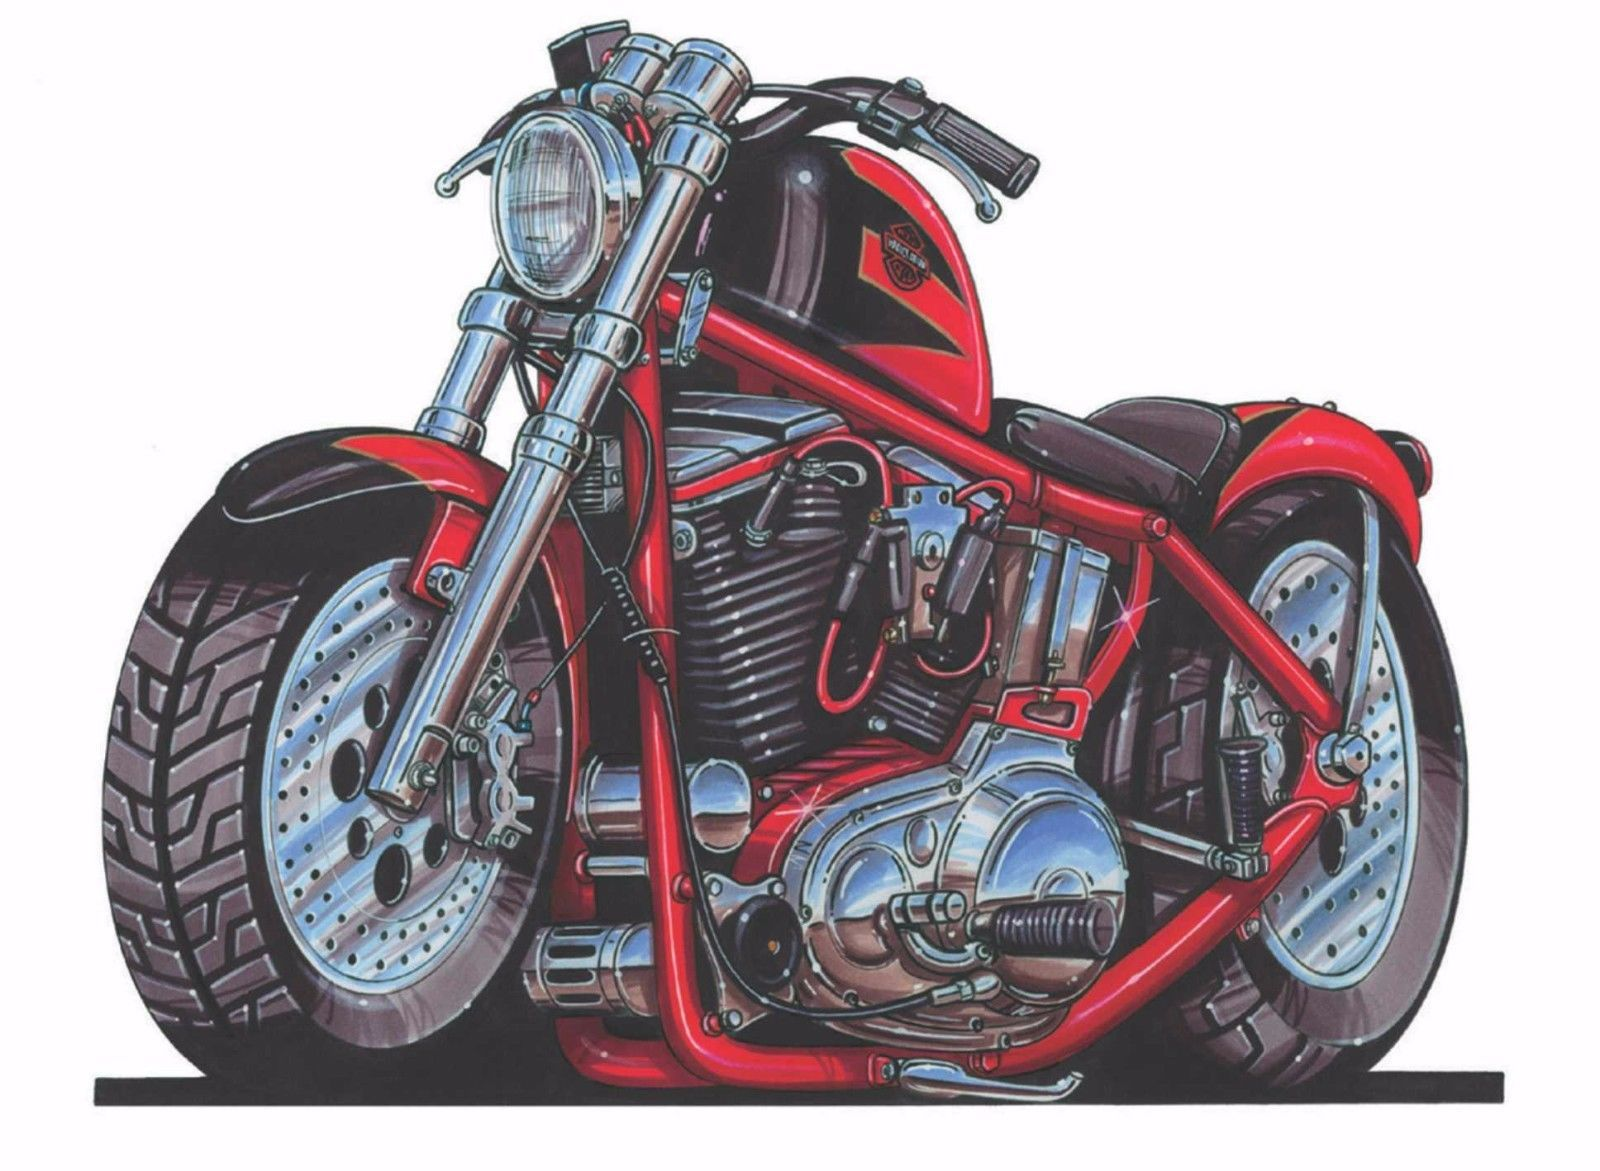 Details about Harley Davidson Red Sport Motorcycle Printed